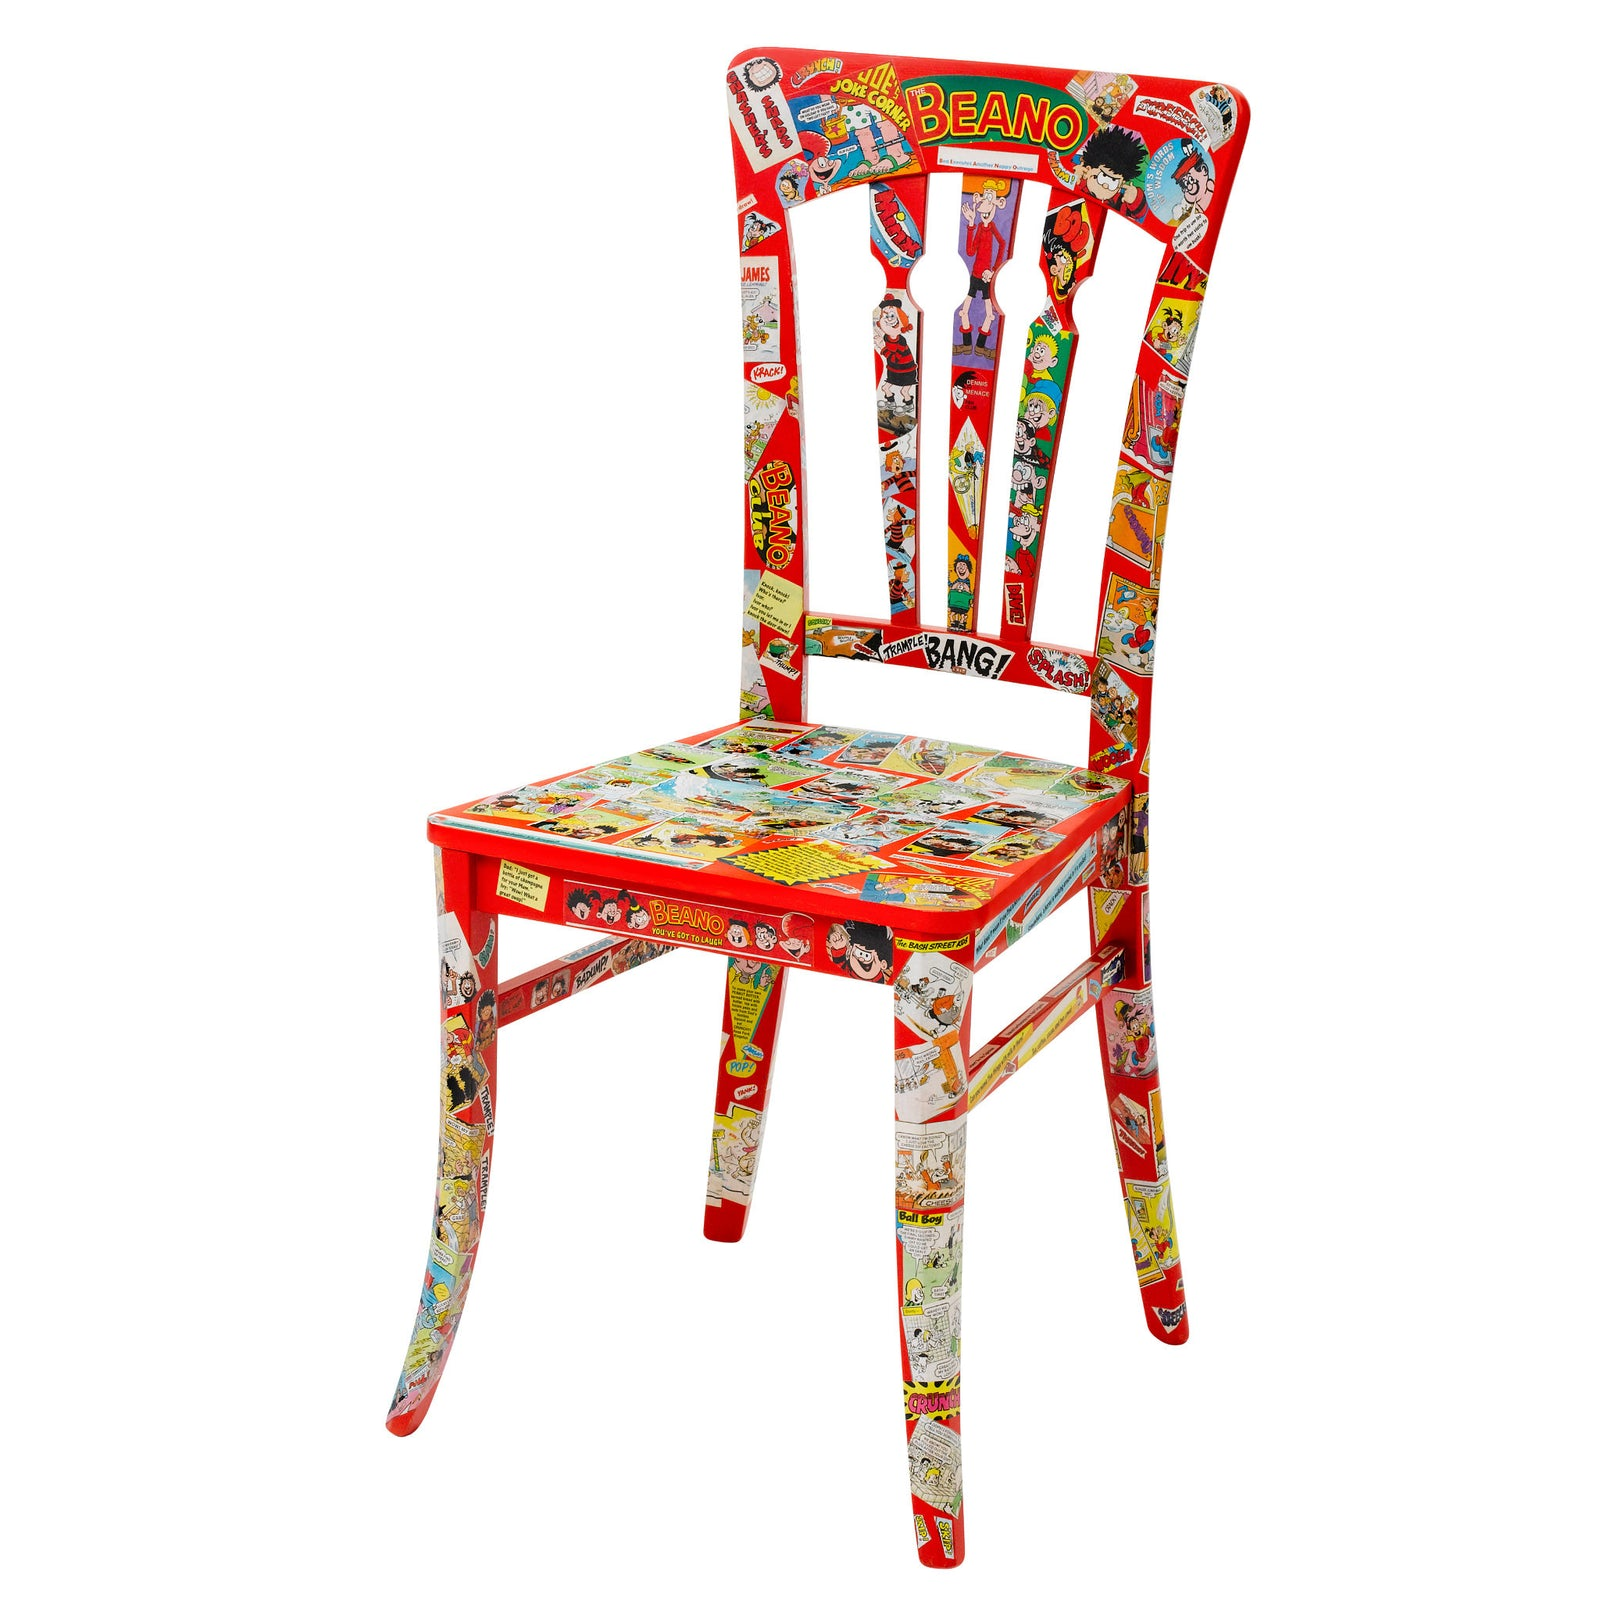 Cheeky Beano Chair in Red - a decoupage chair made with vintage Beano comic strips